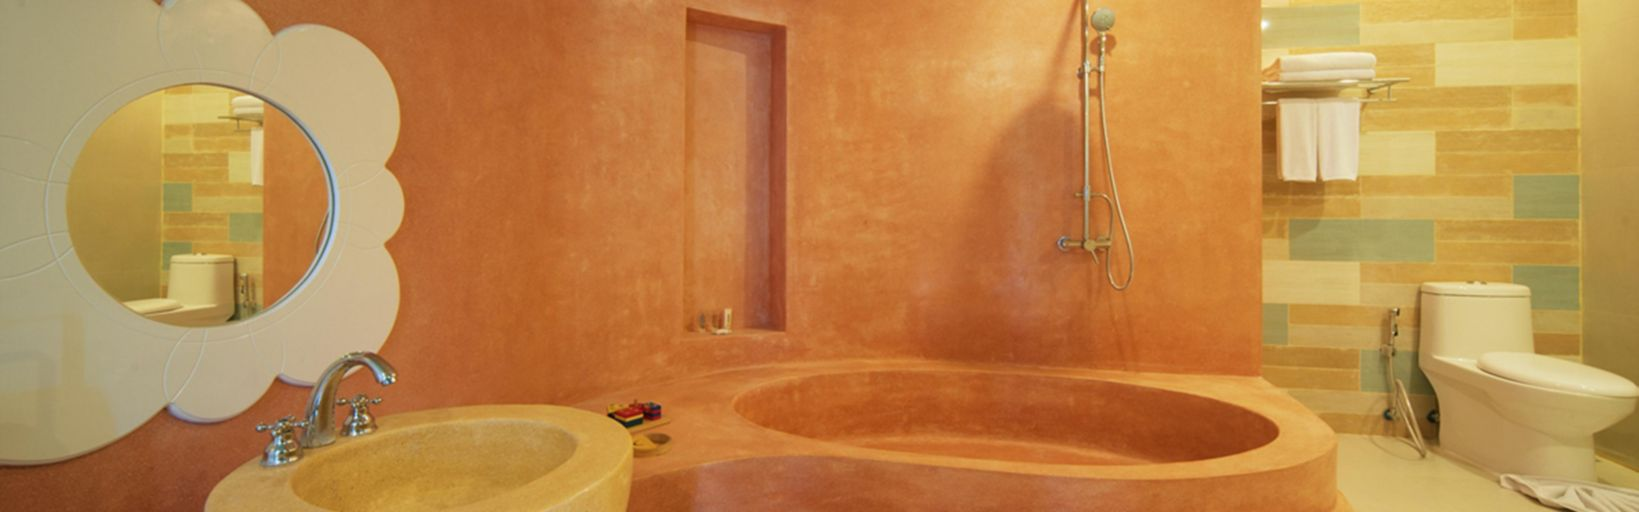 holiday-inn-resort-krabi-3607706010-16×5